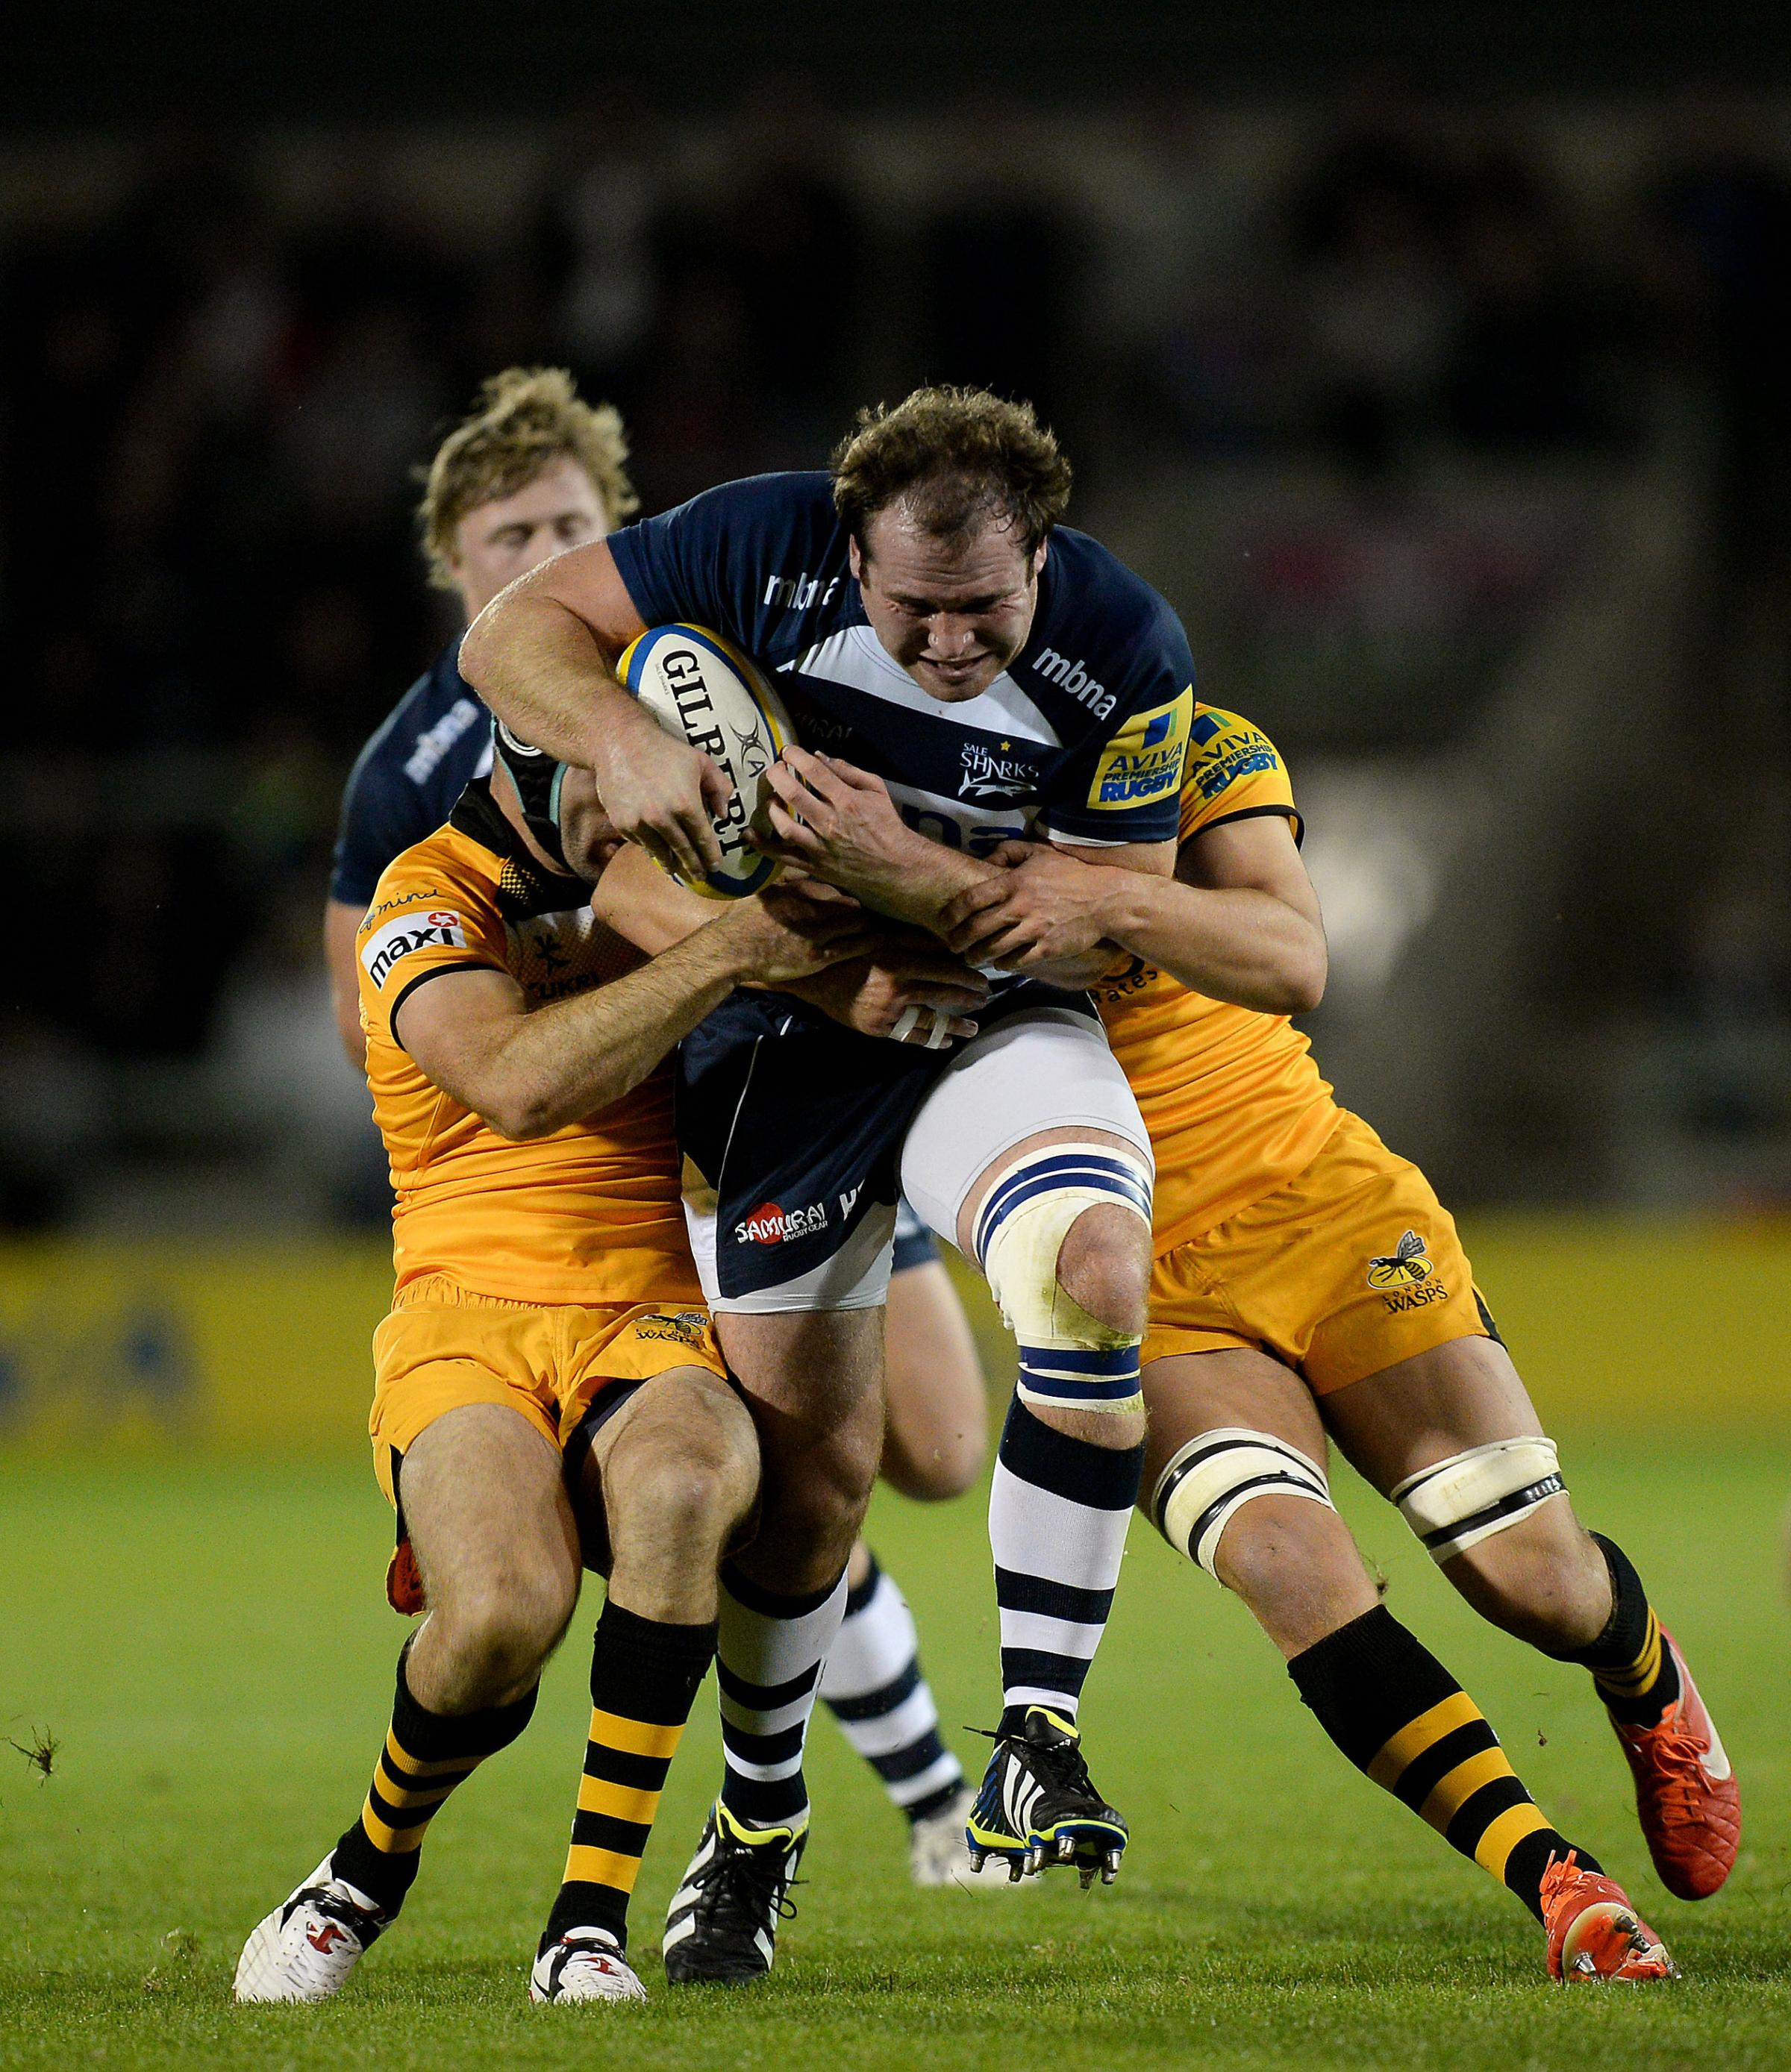 Sale Sharks prop Henry Thomas has been linked with a move to Bath next season